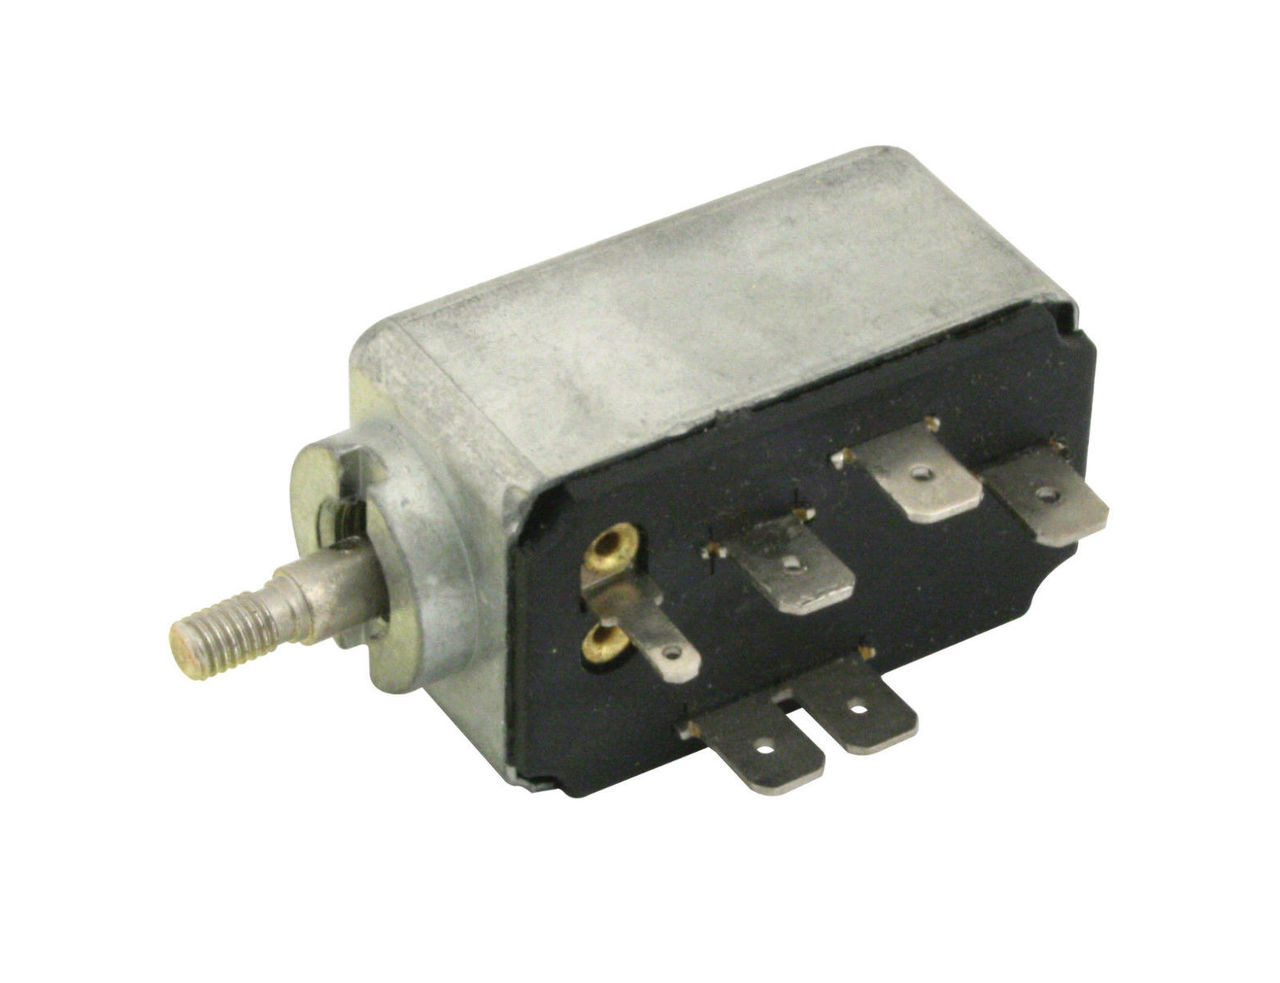 Headlight Switch, Fits Air Cooled VW 71-79 Type 2 BUS 68-70, 211-941-531E